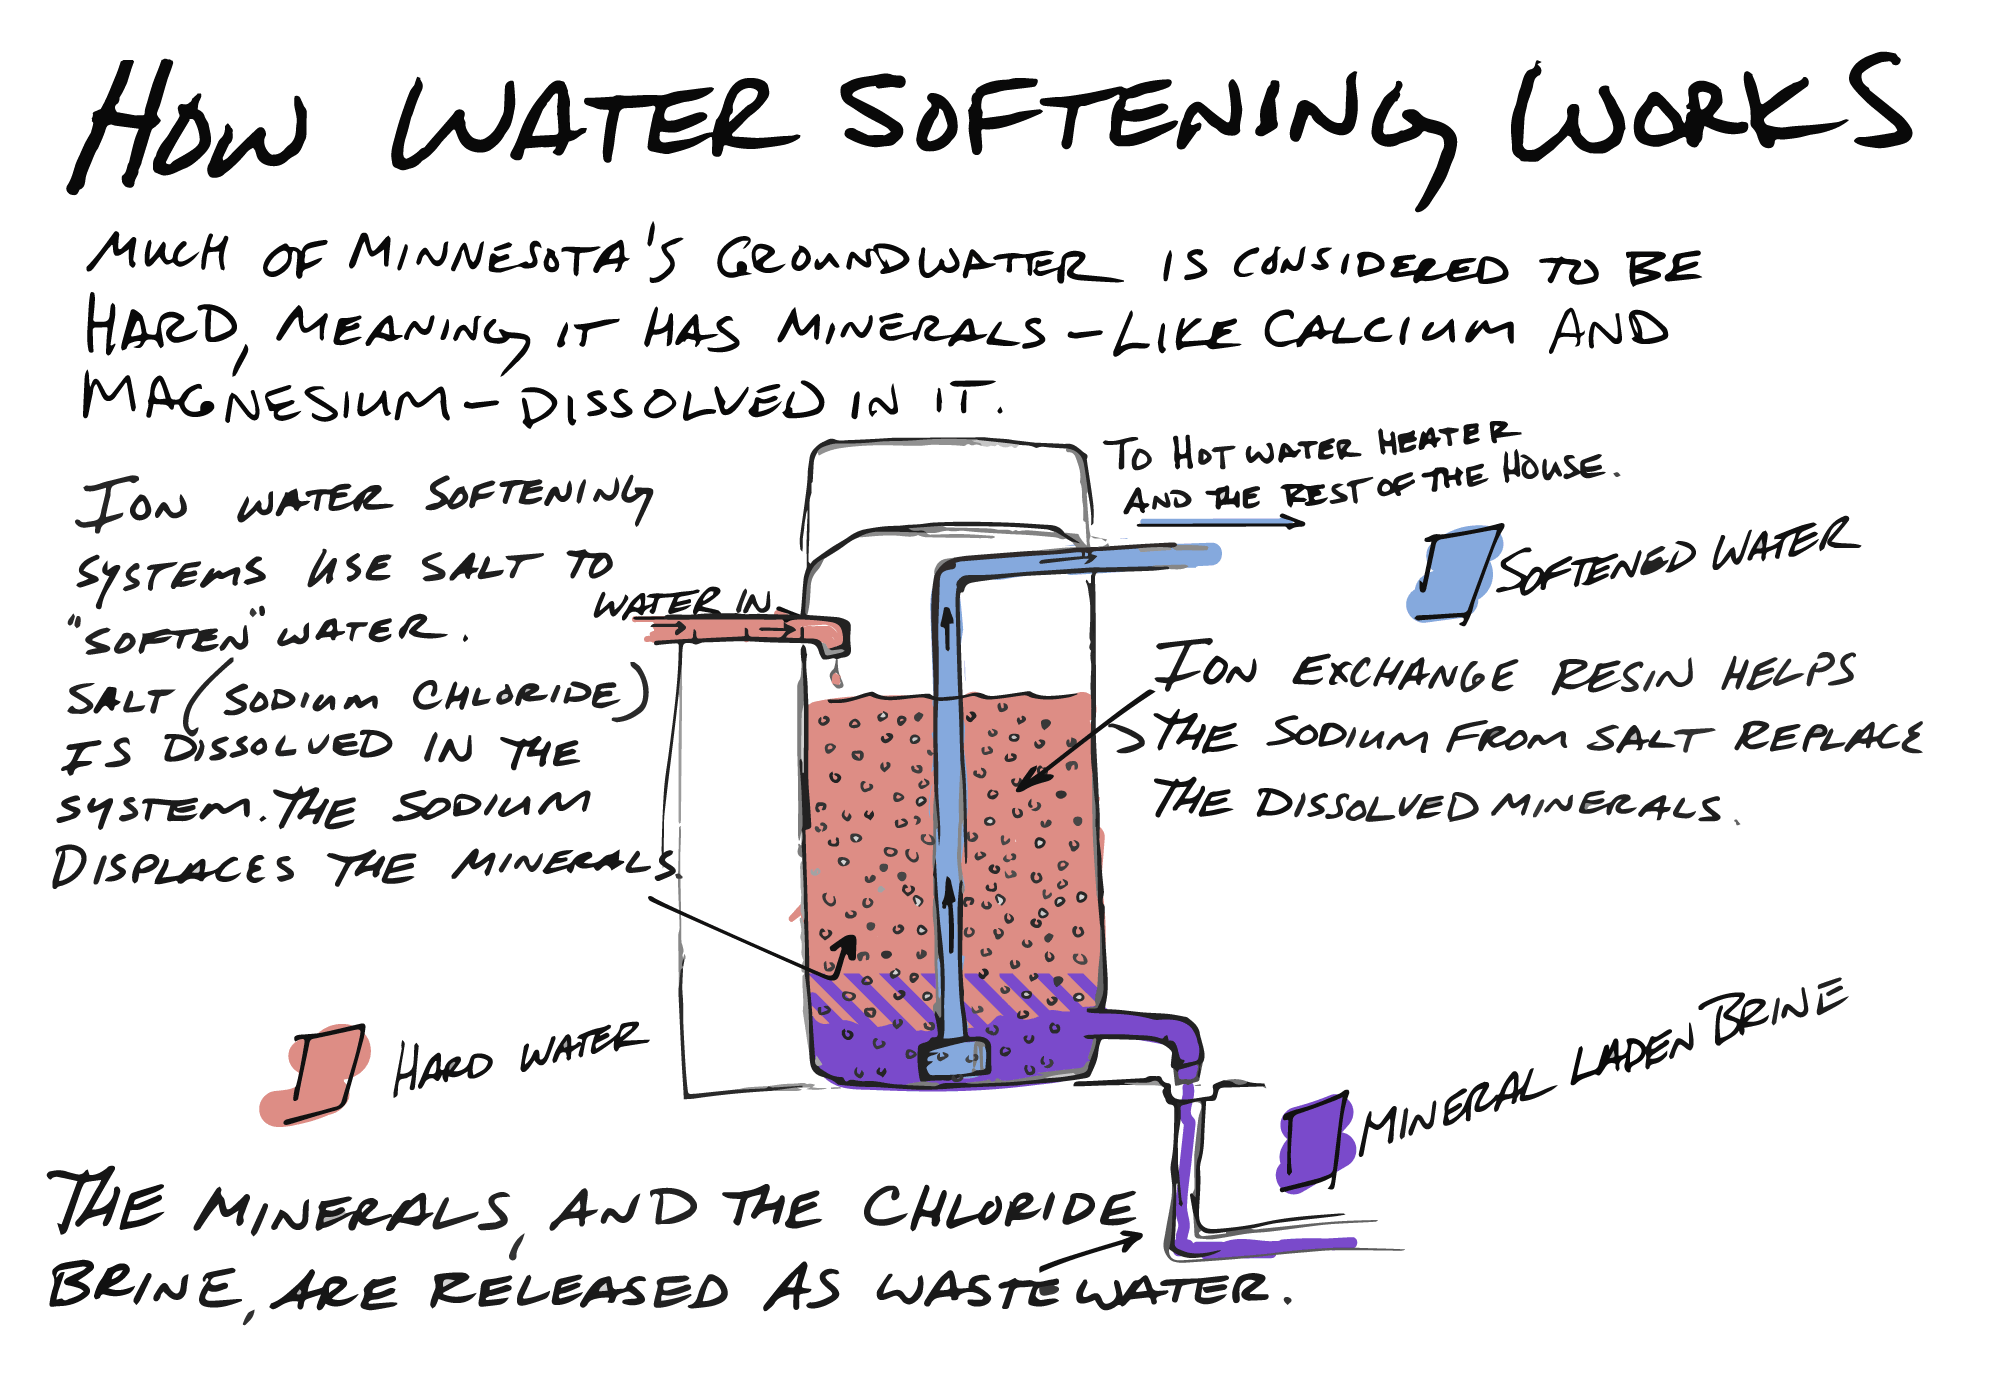 Water softening removes minerals dissolved in groundwater